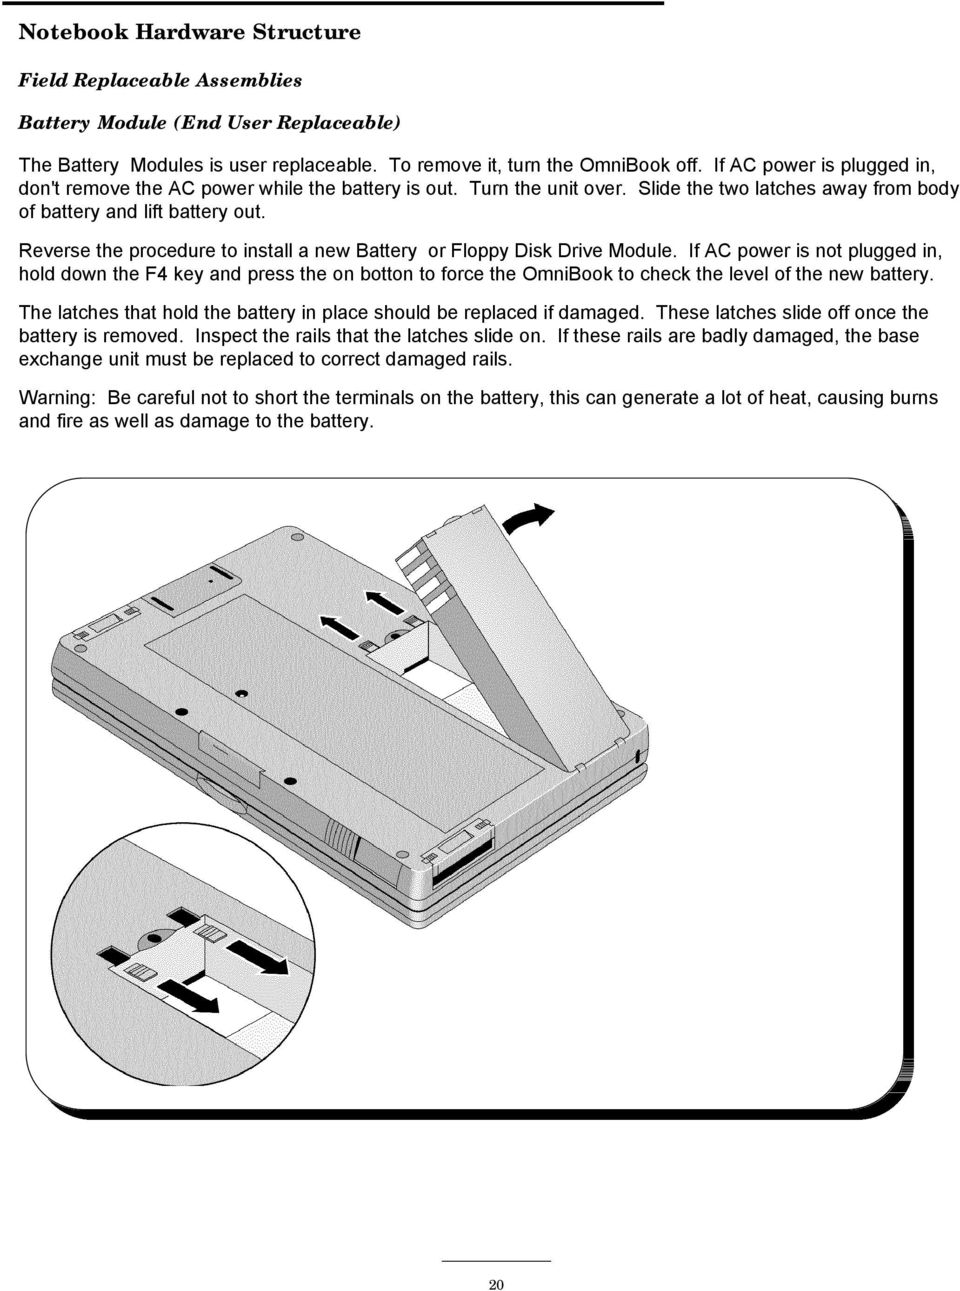 Reverse the procedure to install a new Battery or Floppy Disk Drive Module.